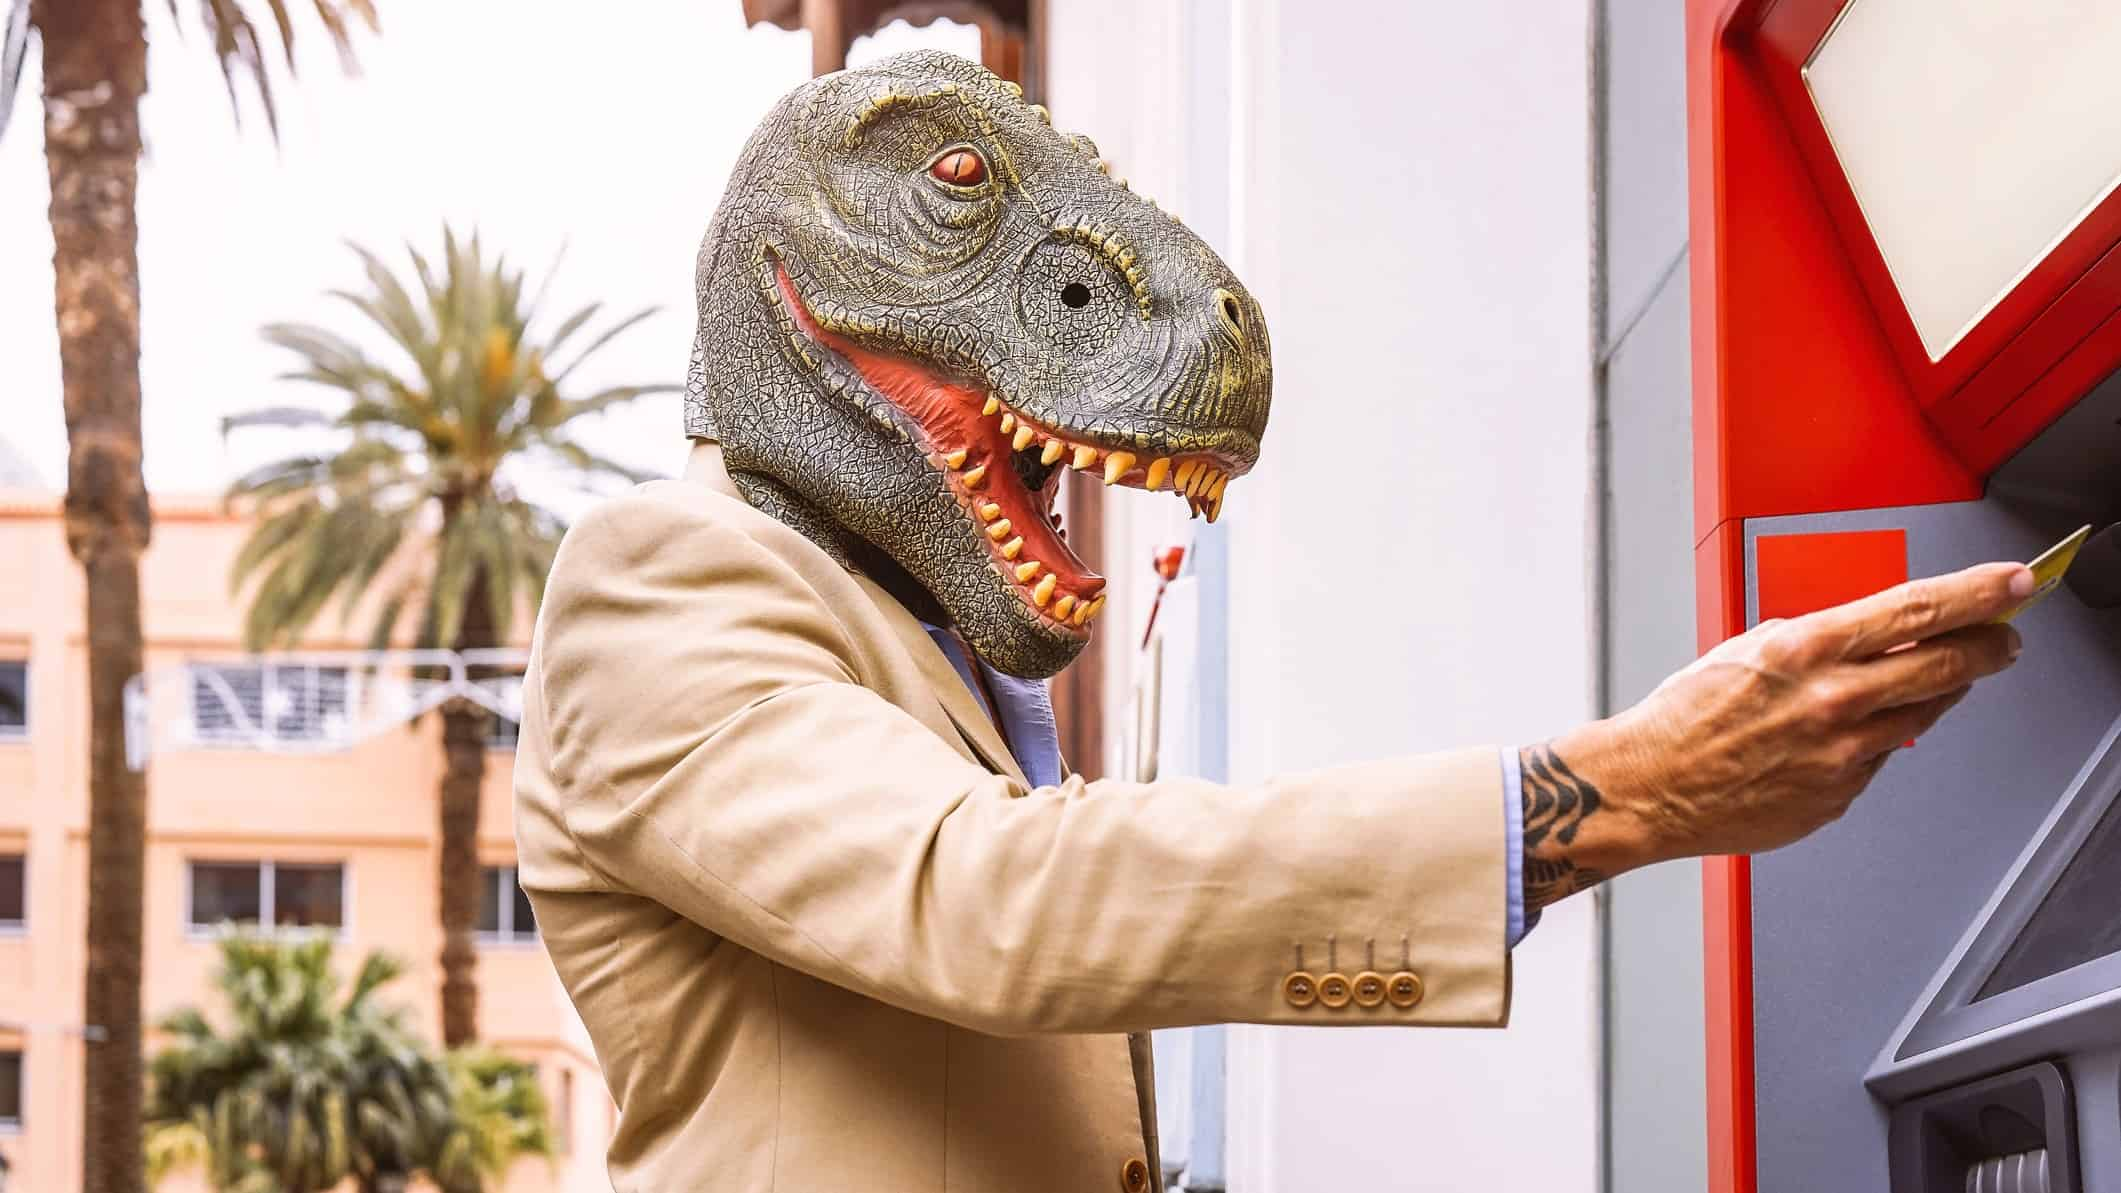 asx shares versus cash represented by man in dinosaur mask withdrawing cash from atm